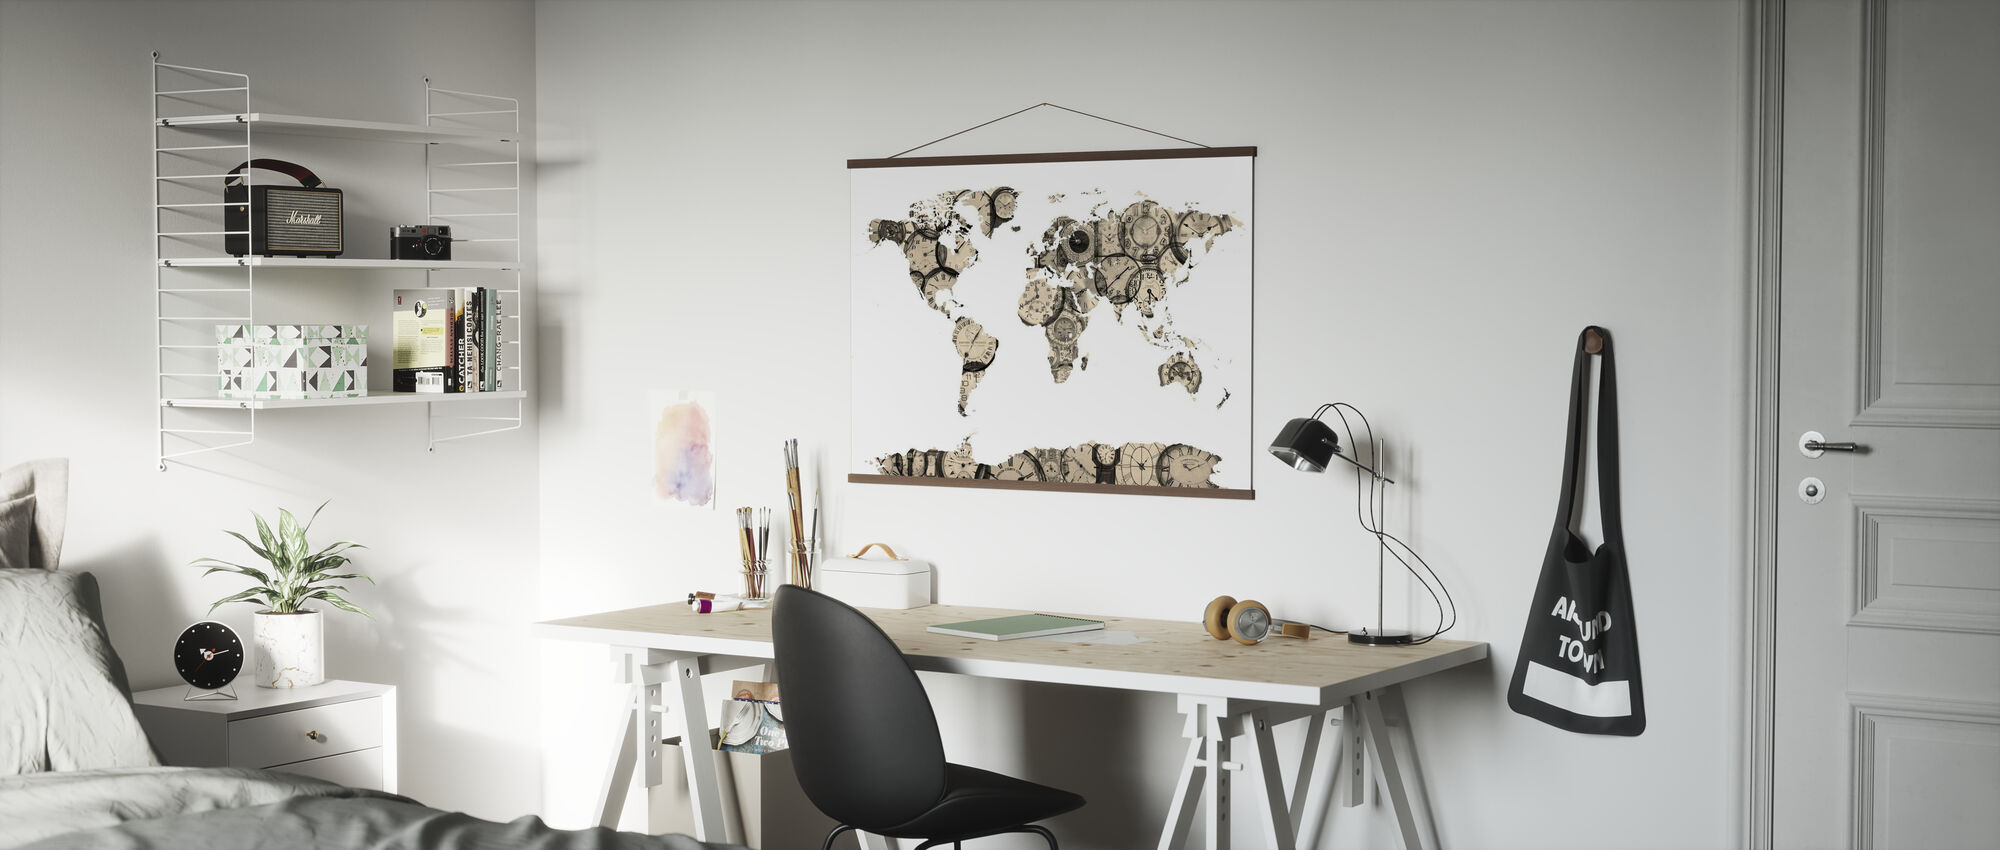 Old Clocks World Map - Poster - Office